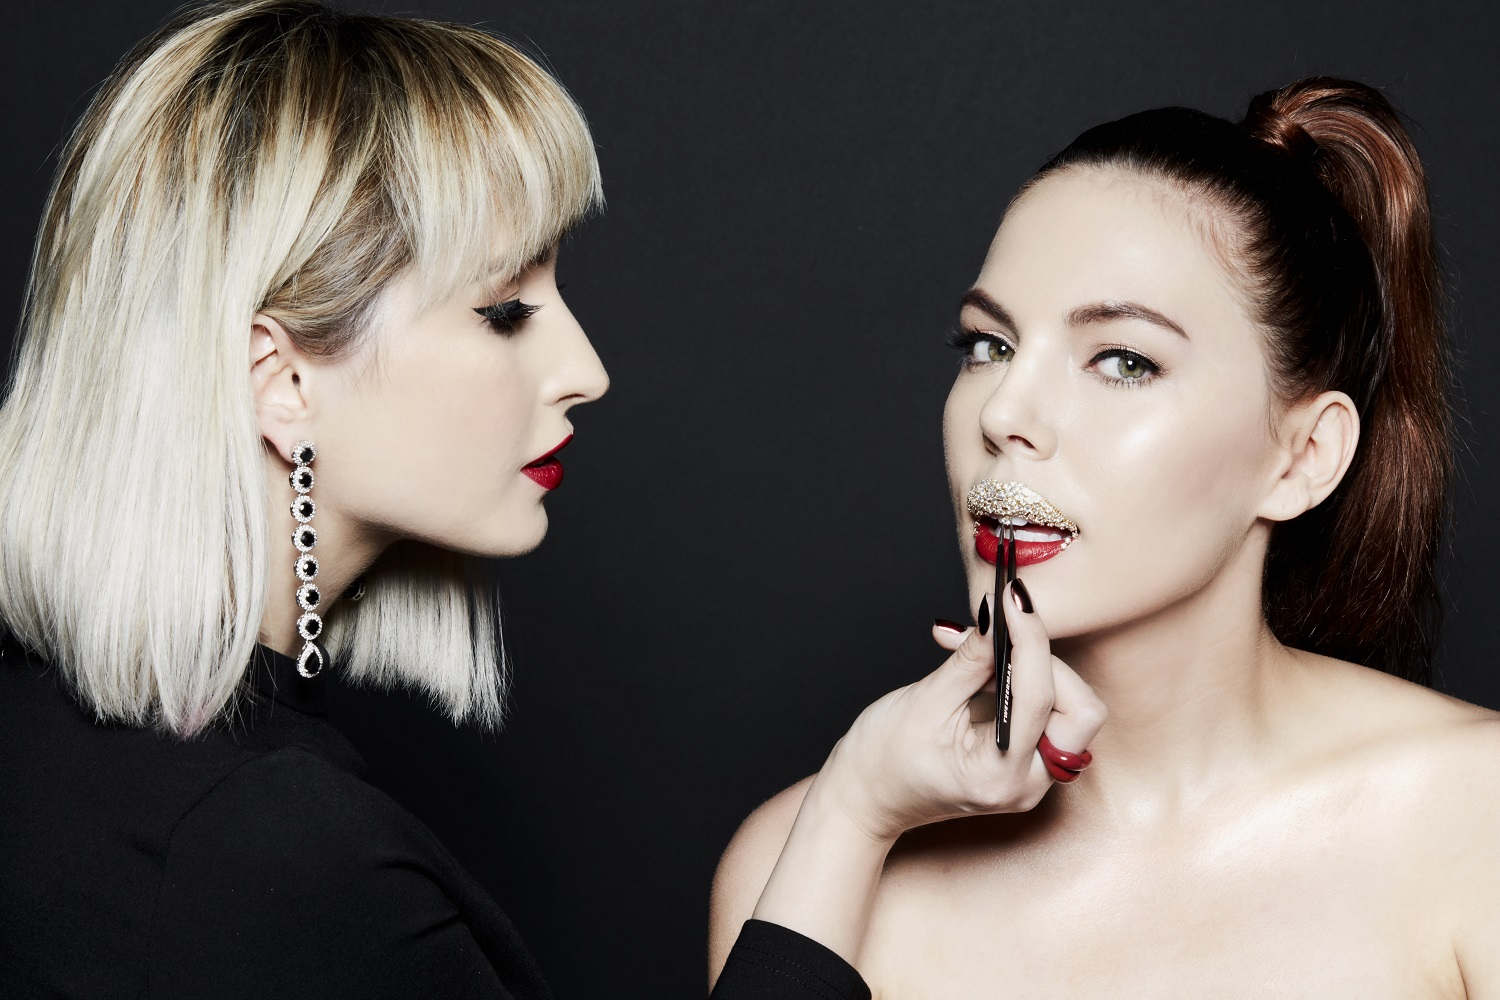 Smashbox Cosmetics collaborated with Makeup Artist Vlada Haggerty